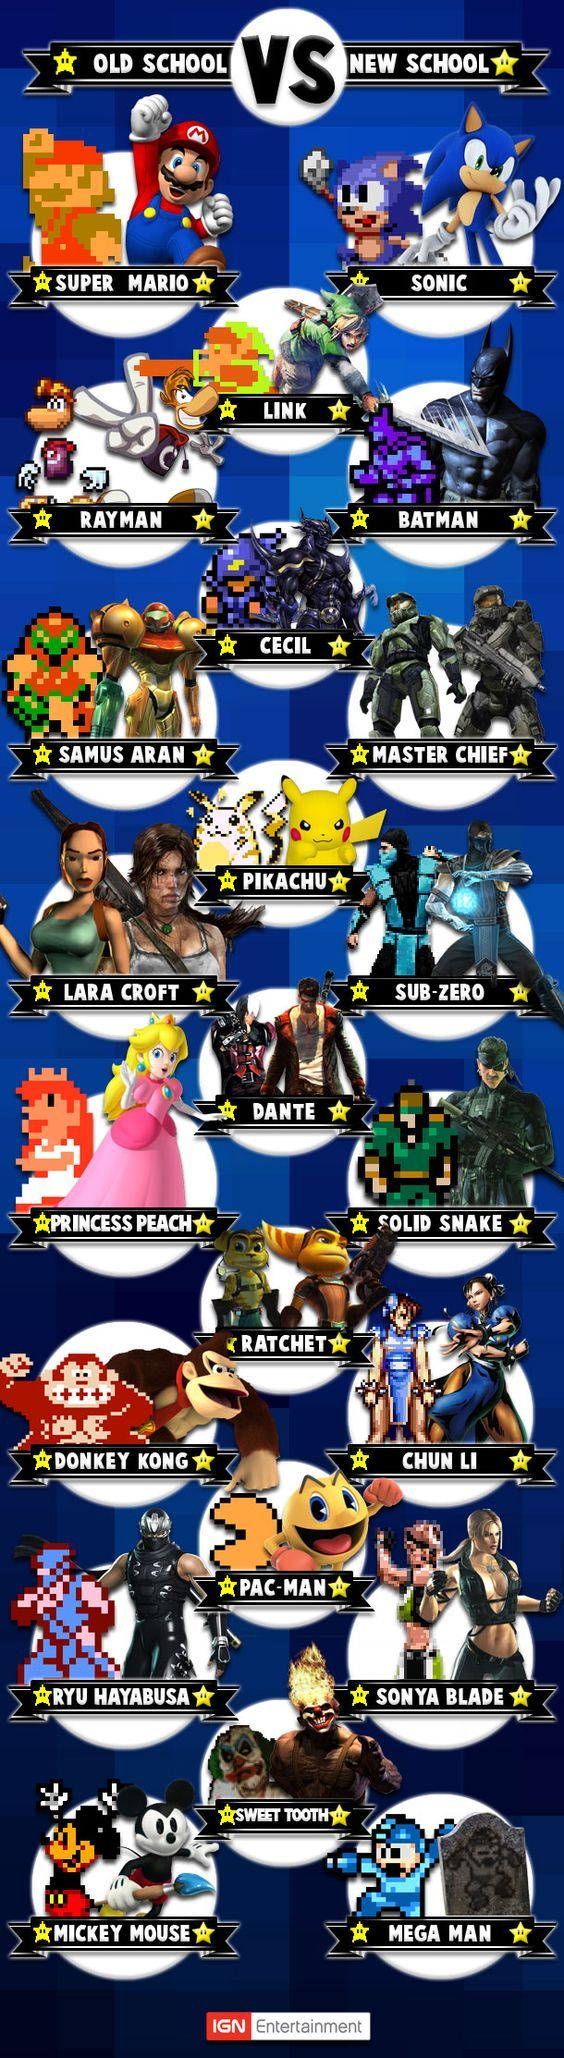 #Gamer #Infographic This is how many of our favorite video game characters looked on day 1 and how they look now! #Mario, #Sonic, #Samus, #Rayman, #Batman, #Link http://www.levelgamingground.com/old-school-gamer-vs-new-school-gamer.html